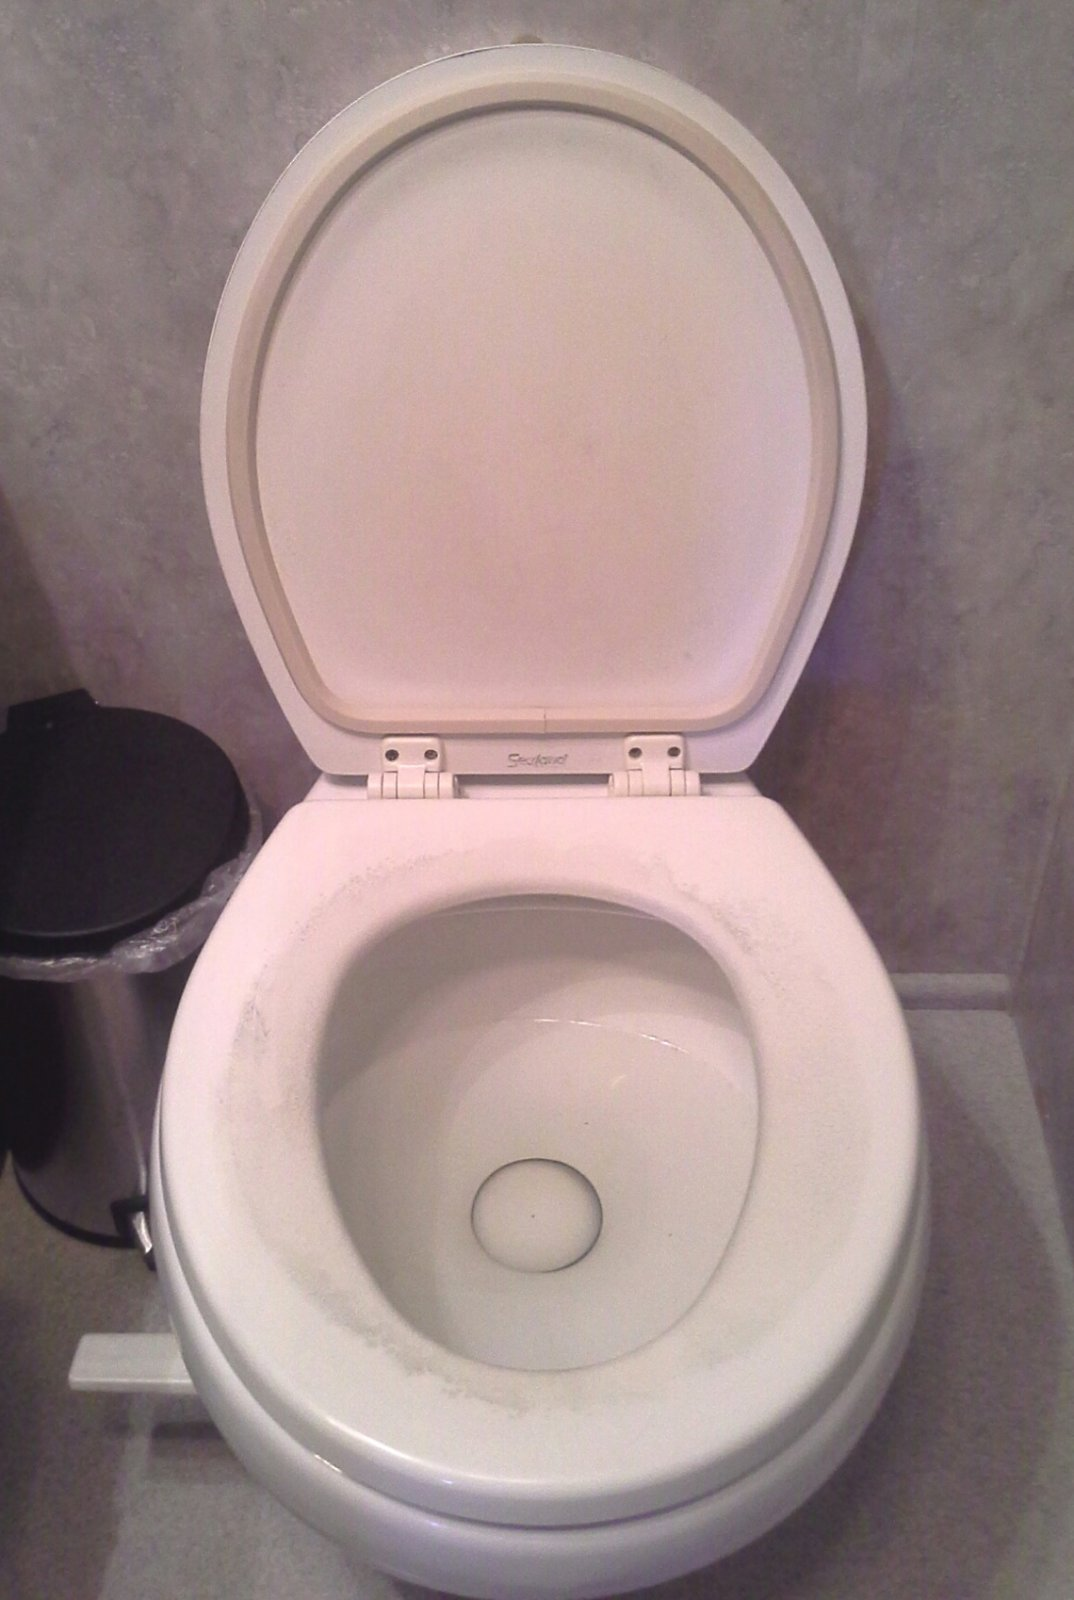 Click image for larger version  Name:Toilet Seat discoloration.jpg Views:262 Size:173.9 KB ID:75766